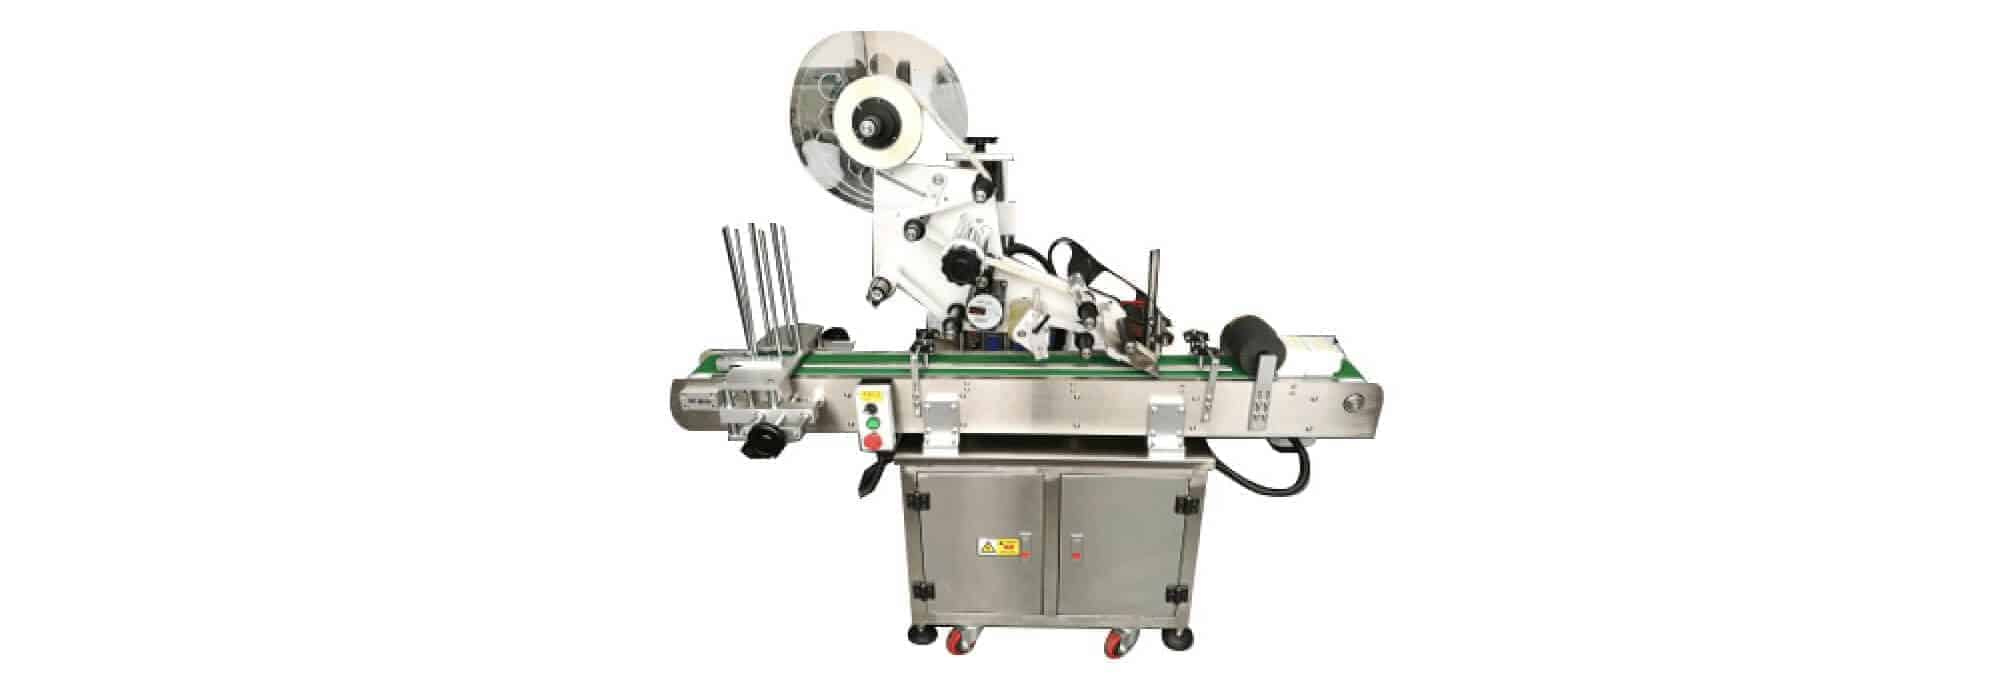 DH L25 Automatic labeling machine - DH-L25 Automatic labeling machine